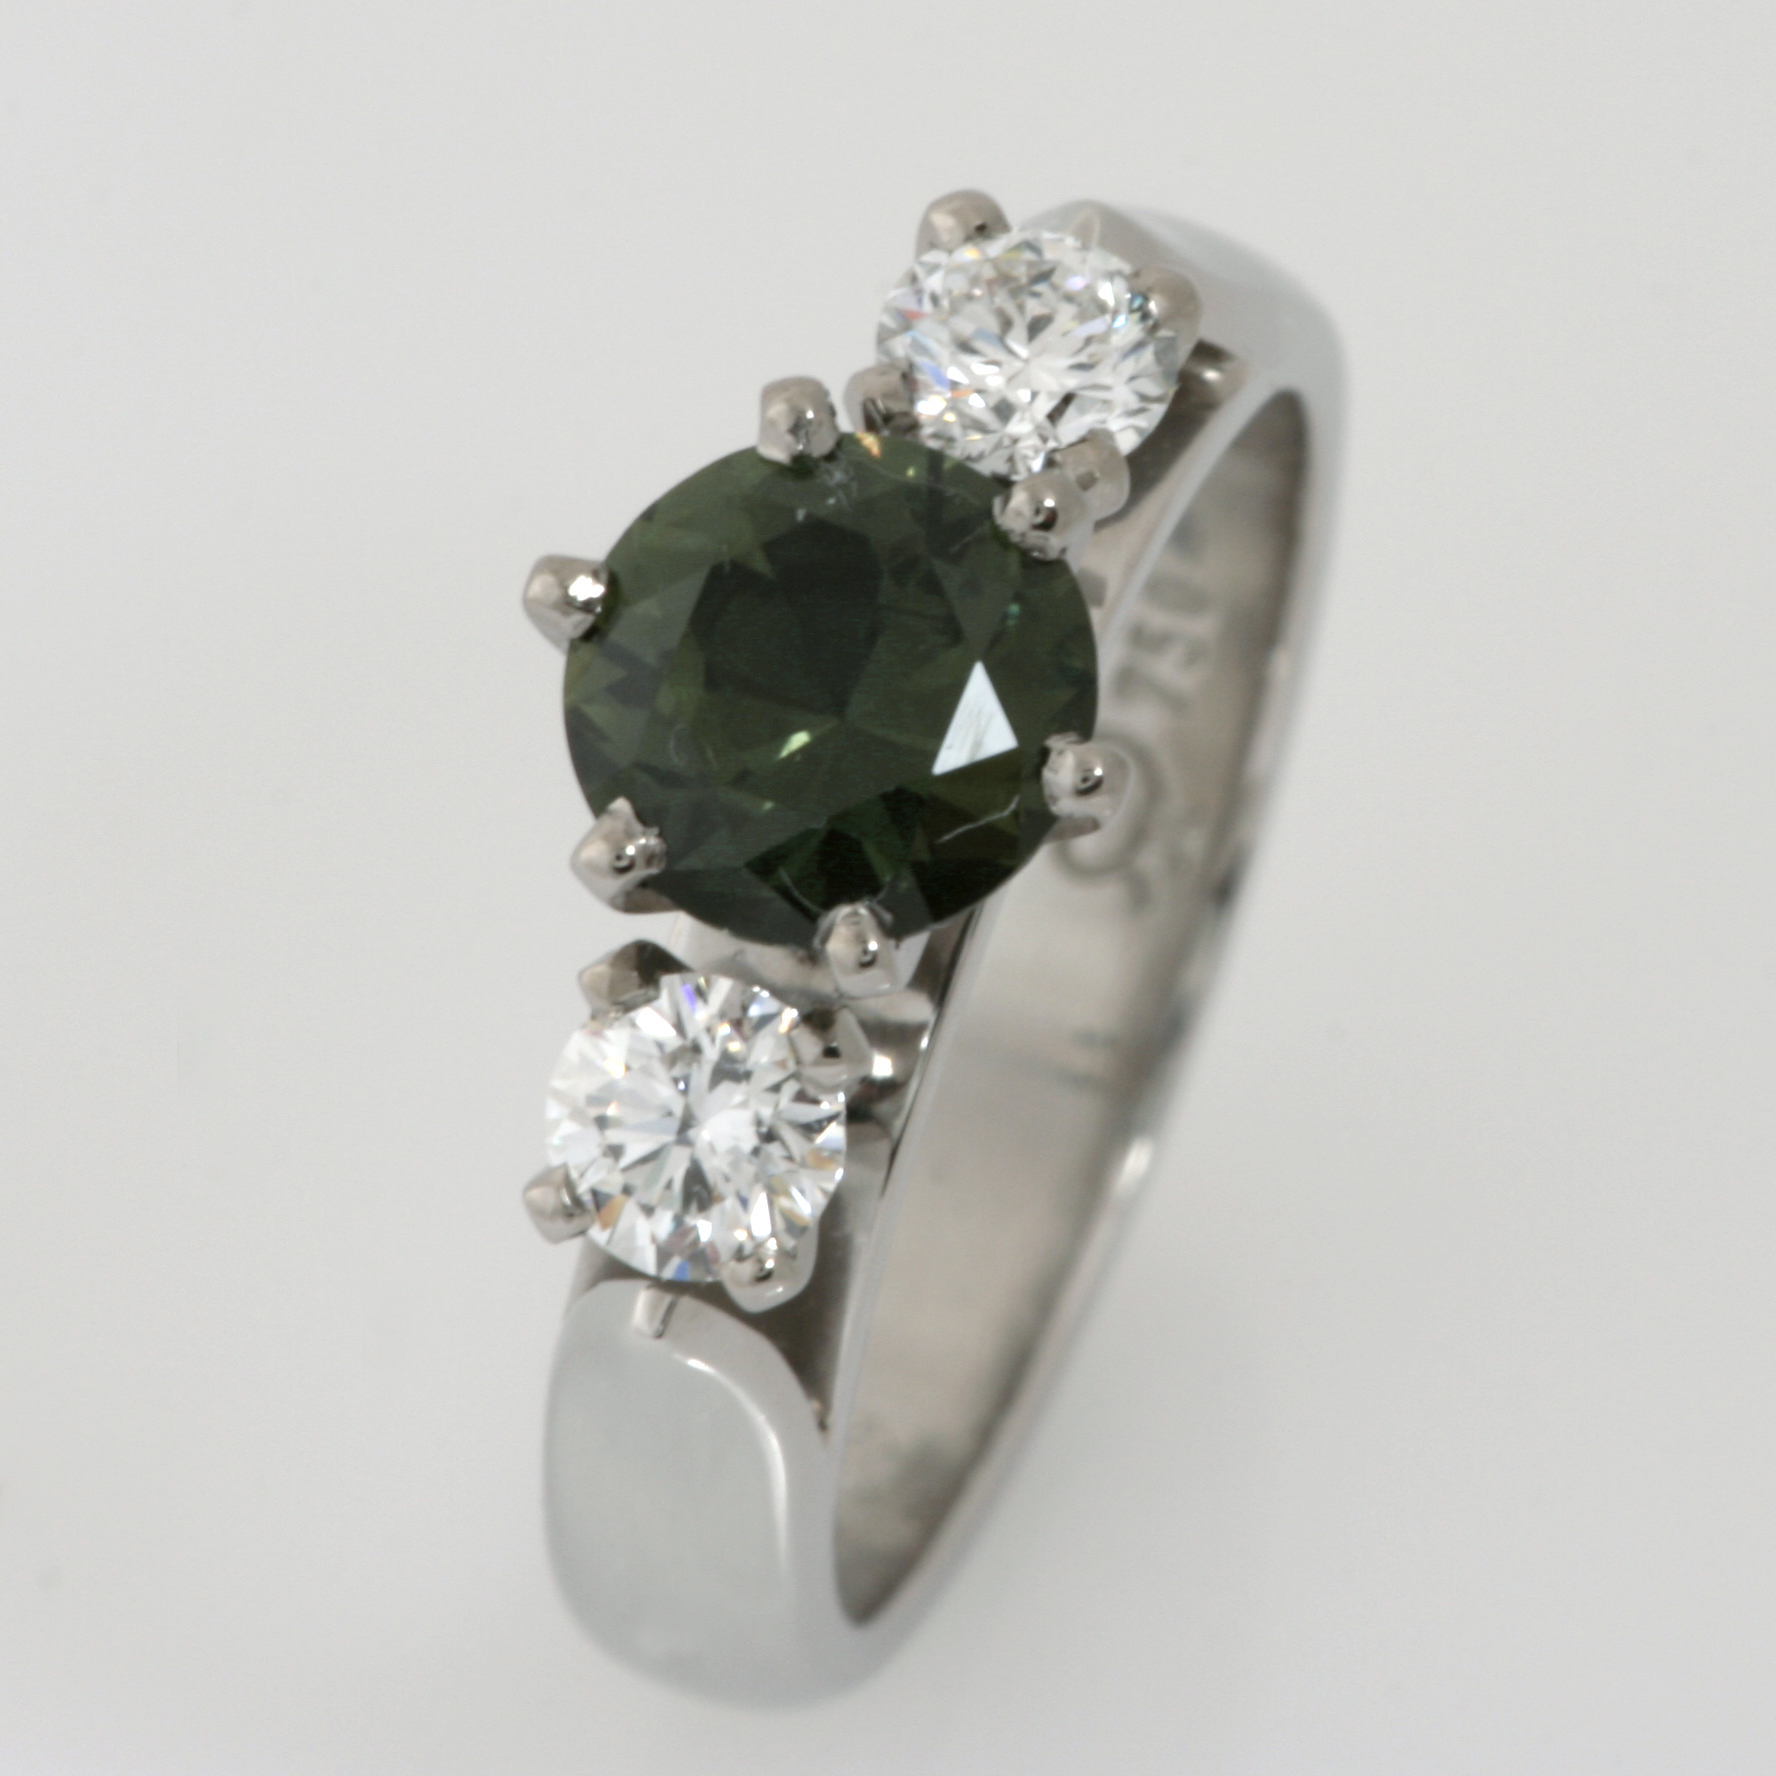 Handmade ladies 18ct white gold and palladium dark green sapphire and diamond ring